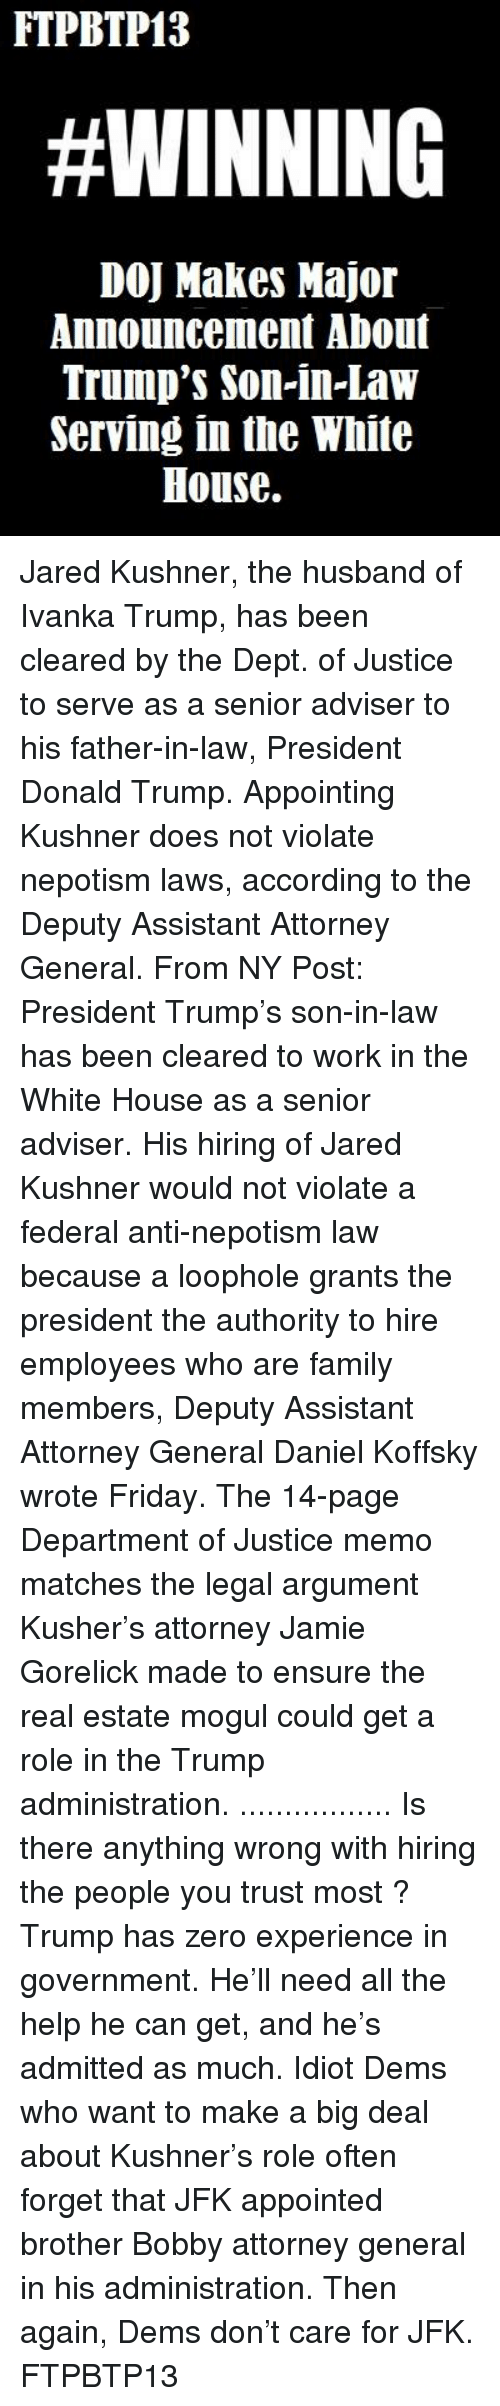 Memes, Zero, and Ensure: FTPBTP13  #WINNING  DOJ Makes Major  Announcement Aboul  Trump's son-in-law  Serving in the White  House. Jared Kushner, the husband of Ivanka Trump, has been cleared by the Dept. of Justice to serve as a senior adviser to his father-in-law, President Donald Trump.  Appointing Kushner does not violate nepotism laws, according to the Deputy Assistant Attorney General.  From NY Post:  President Trump's son-in-law has been cleared to work in the White House as a senior adviser.  His hiring of Jared Kushner would not violate a federal anti-nepotism law because a loophole grants the president the authority to hire employees who are family members, Deputy Assistant Attorney General Daniel Koffsky wrote Friday.  The 14-page Department of Justice memo matches the legal argument Kusher's attorney Jamie Gorelick made to ensure the real estate mogul could get a role in the Trump administration. .................  Is there anything wrong with hiring the people you trust most ?  Trump has zero experience in government. He'll need all the help he can get, and he's admitted as much.  Idiot Dems who want to make a big deal about Kushner's role often forget that JFK appointed brother Bobby attorney general in his administration.  Then again, Dems don't care for JFK.  FTPBTP13